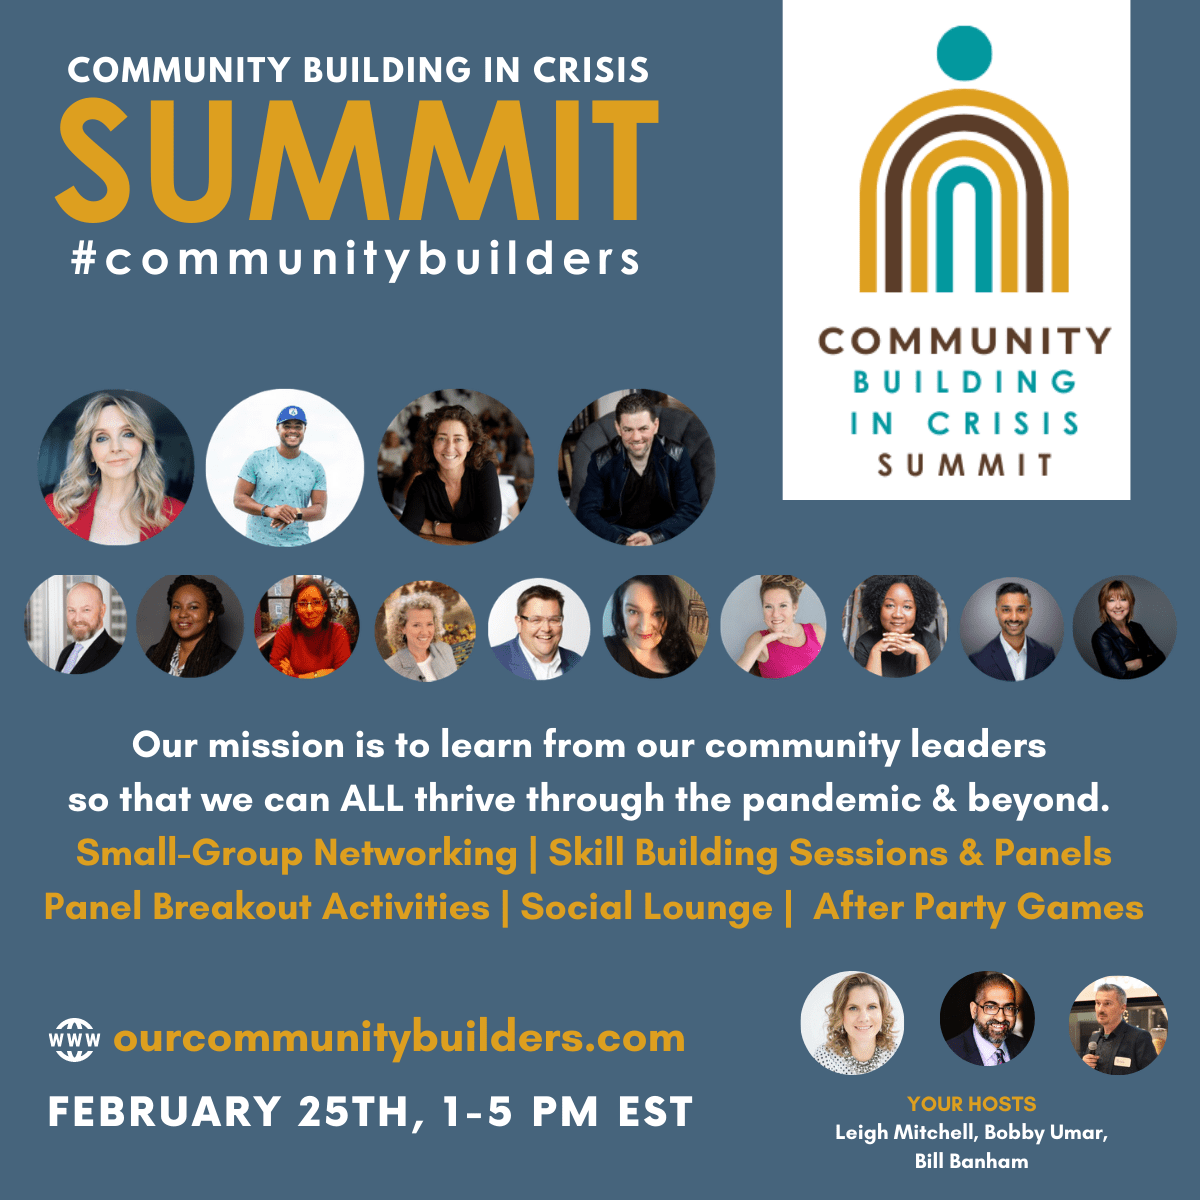 Register now for Community Building in Crisis Complimentary Summit (Feb.25) #communitybuilders